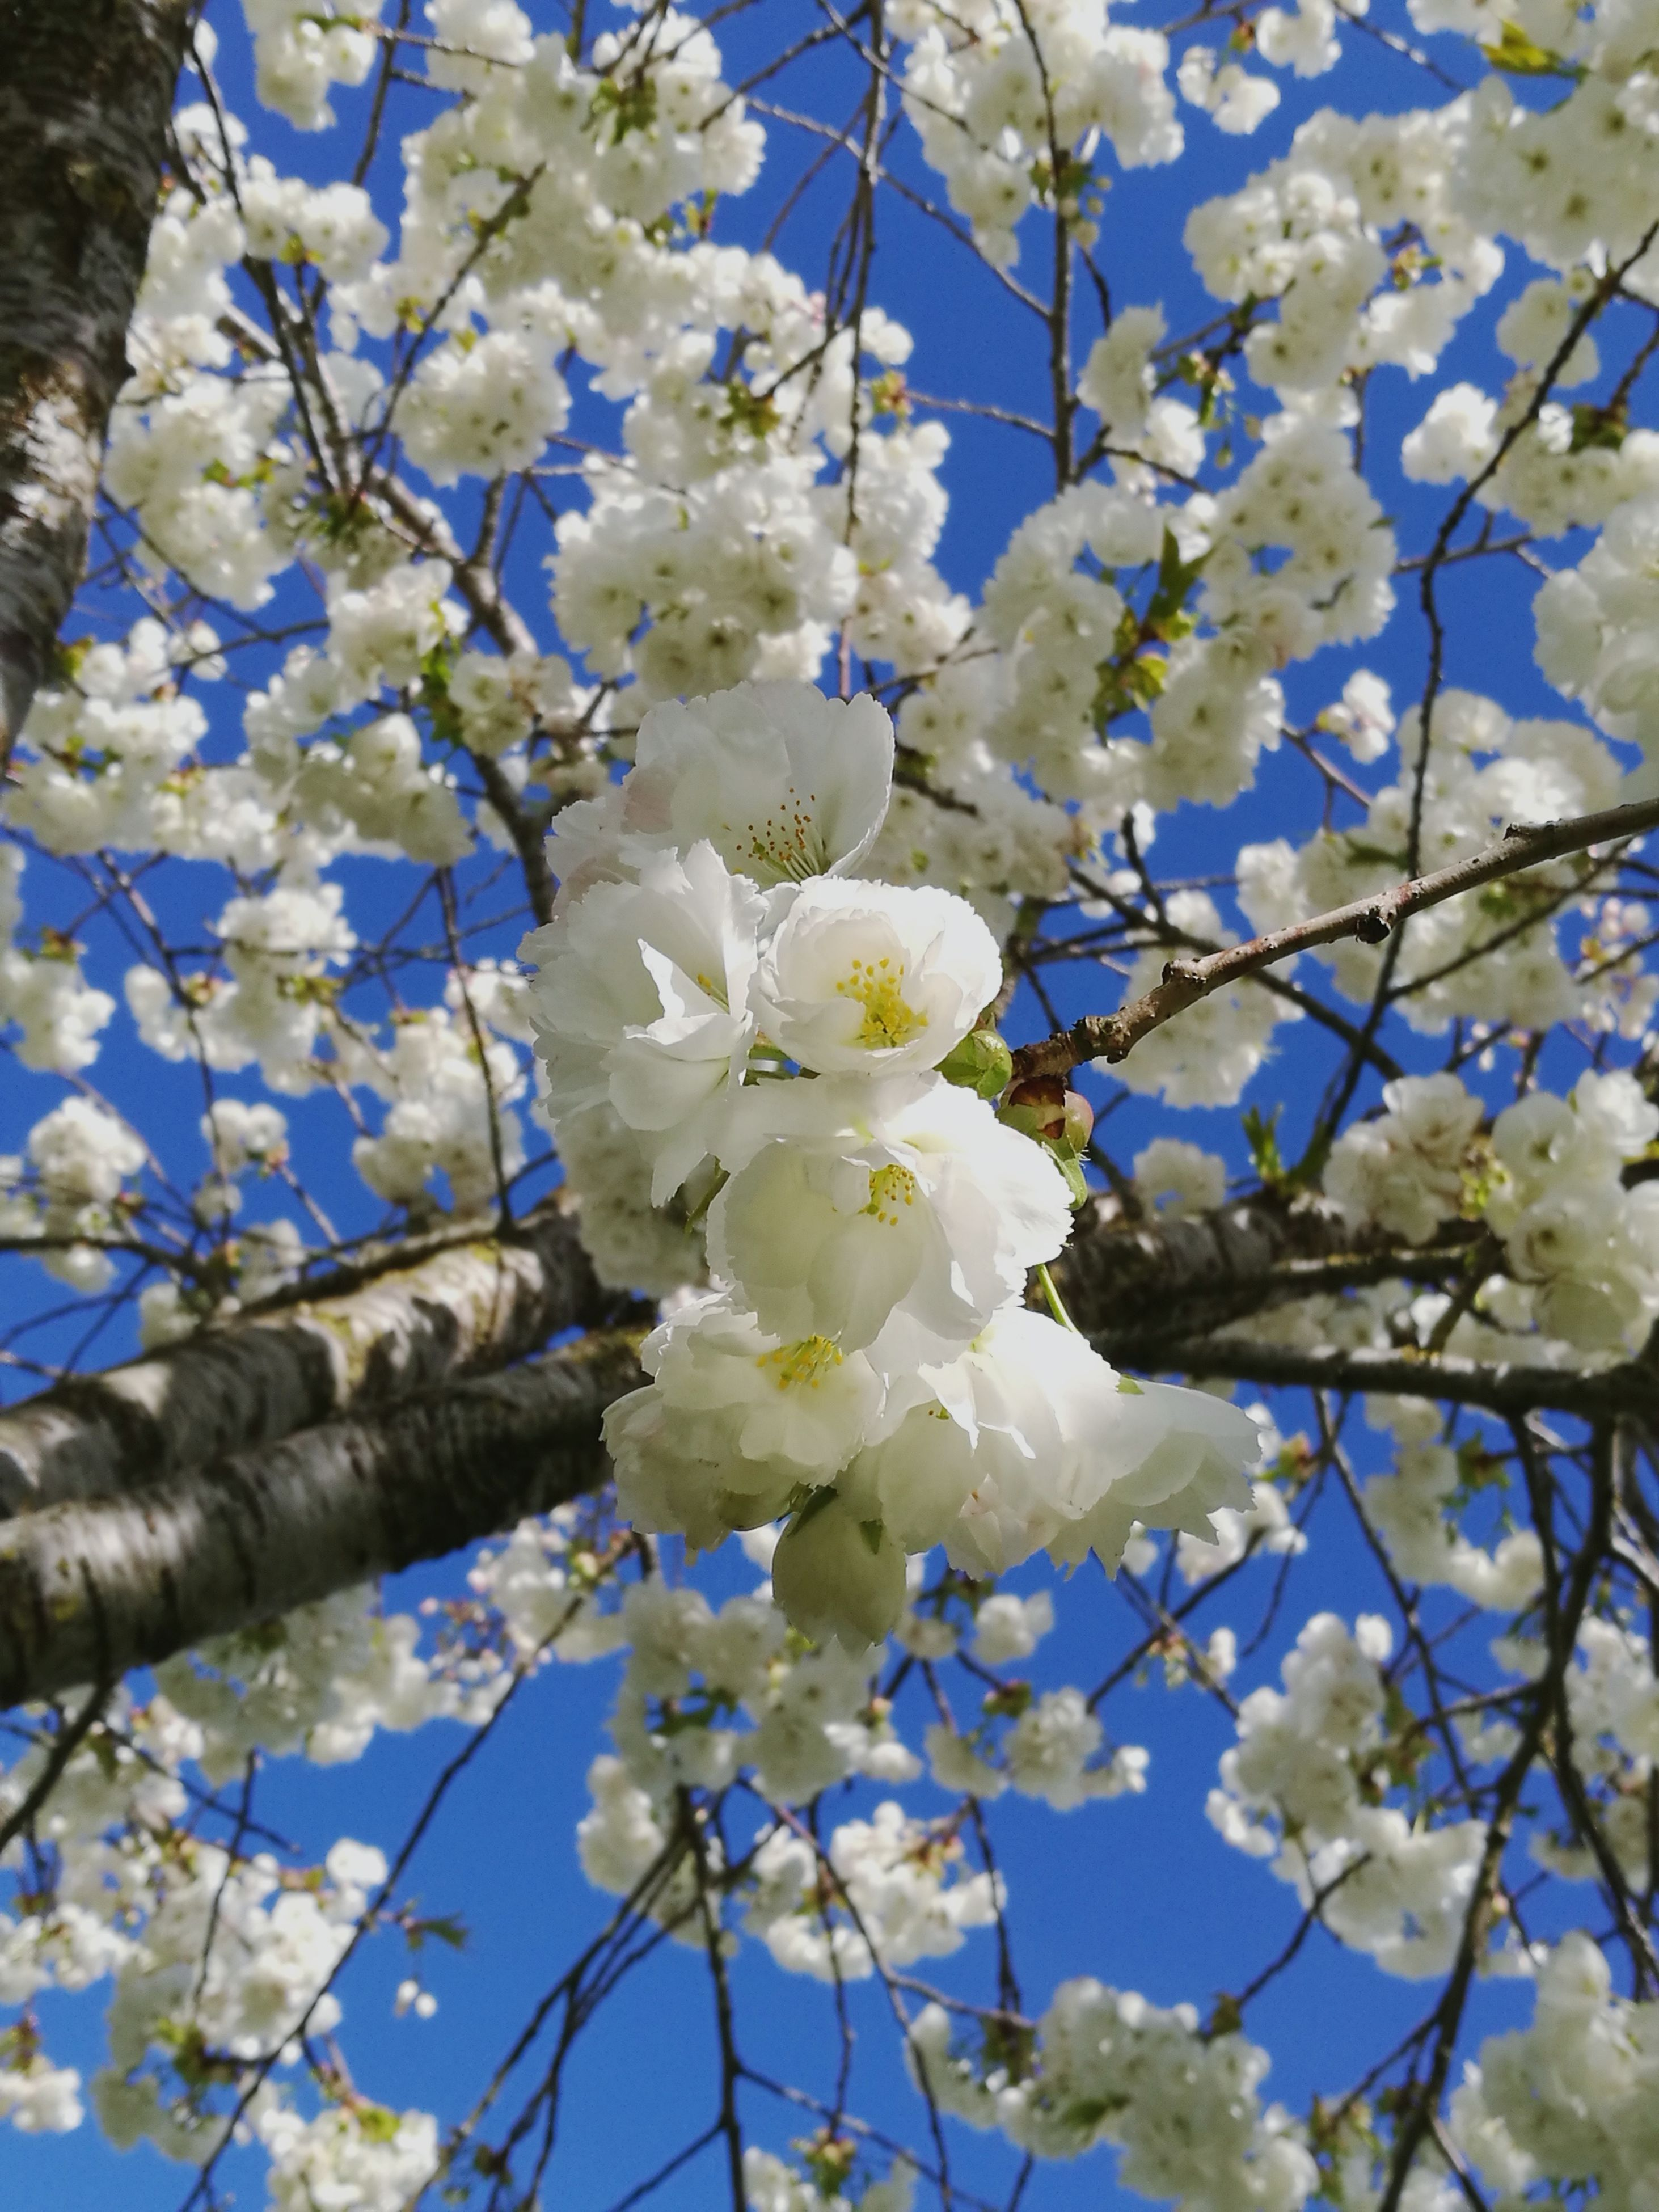 flower, nature, growth, white color, beauty in nature, tree, fragility, blossom, no people, branch, twig, springtime, close-up, outdoors, low angle view, freshness, day, flower head, plum blossom